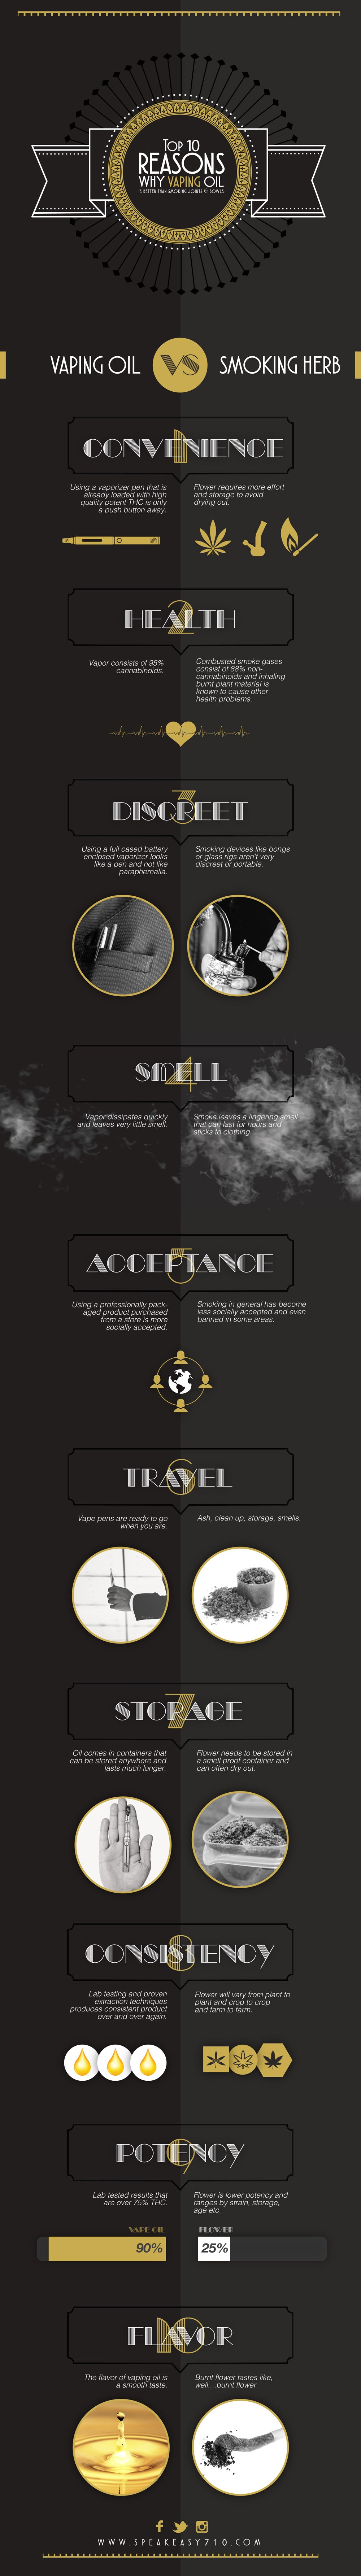 Speakeasy Infographic